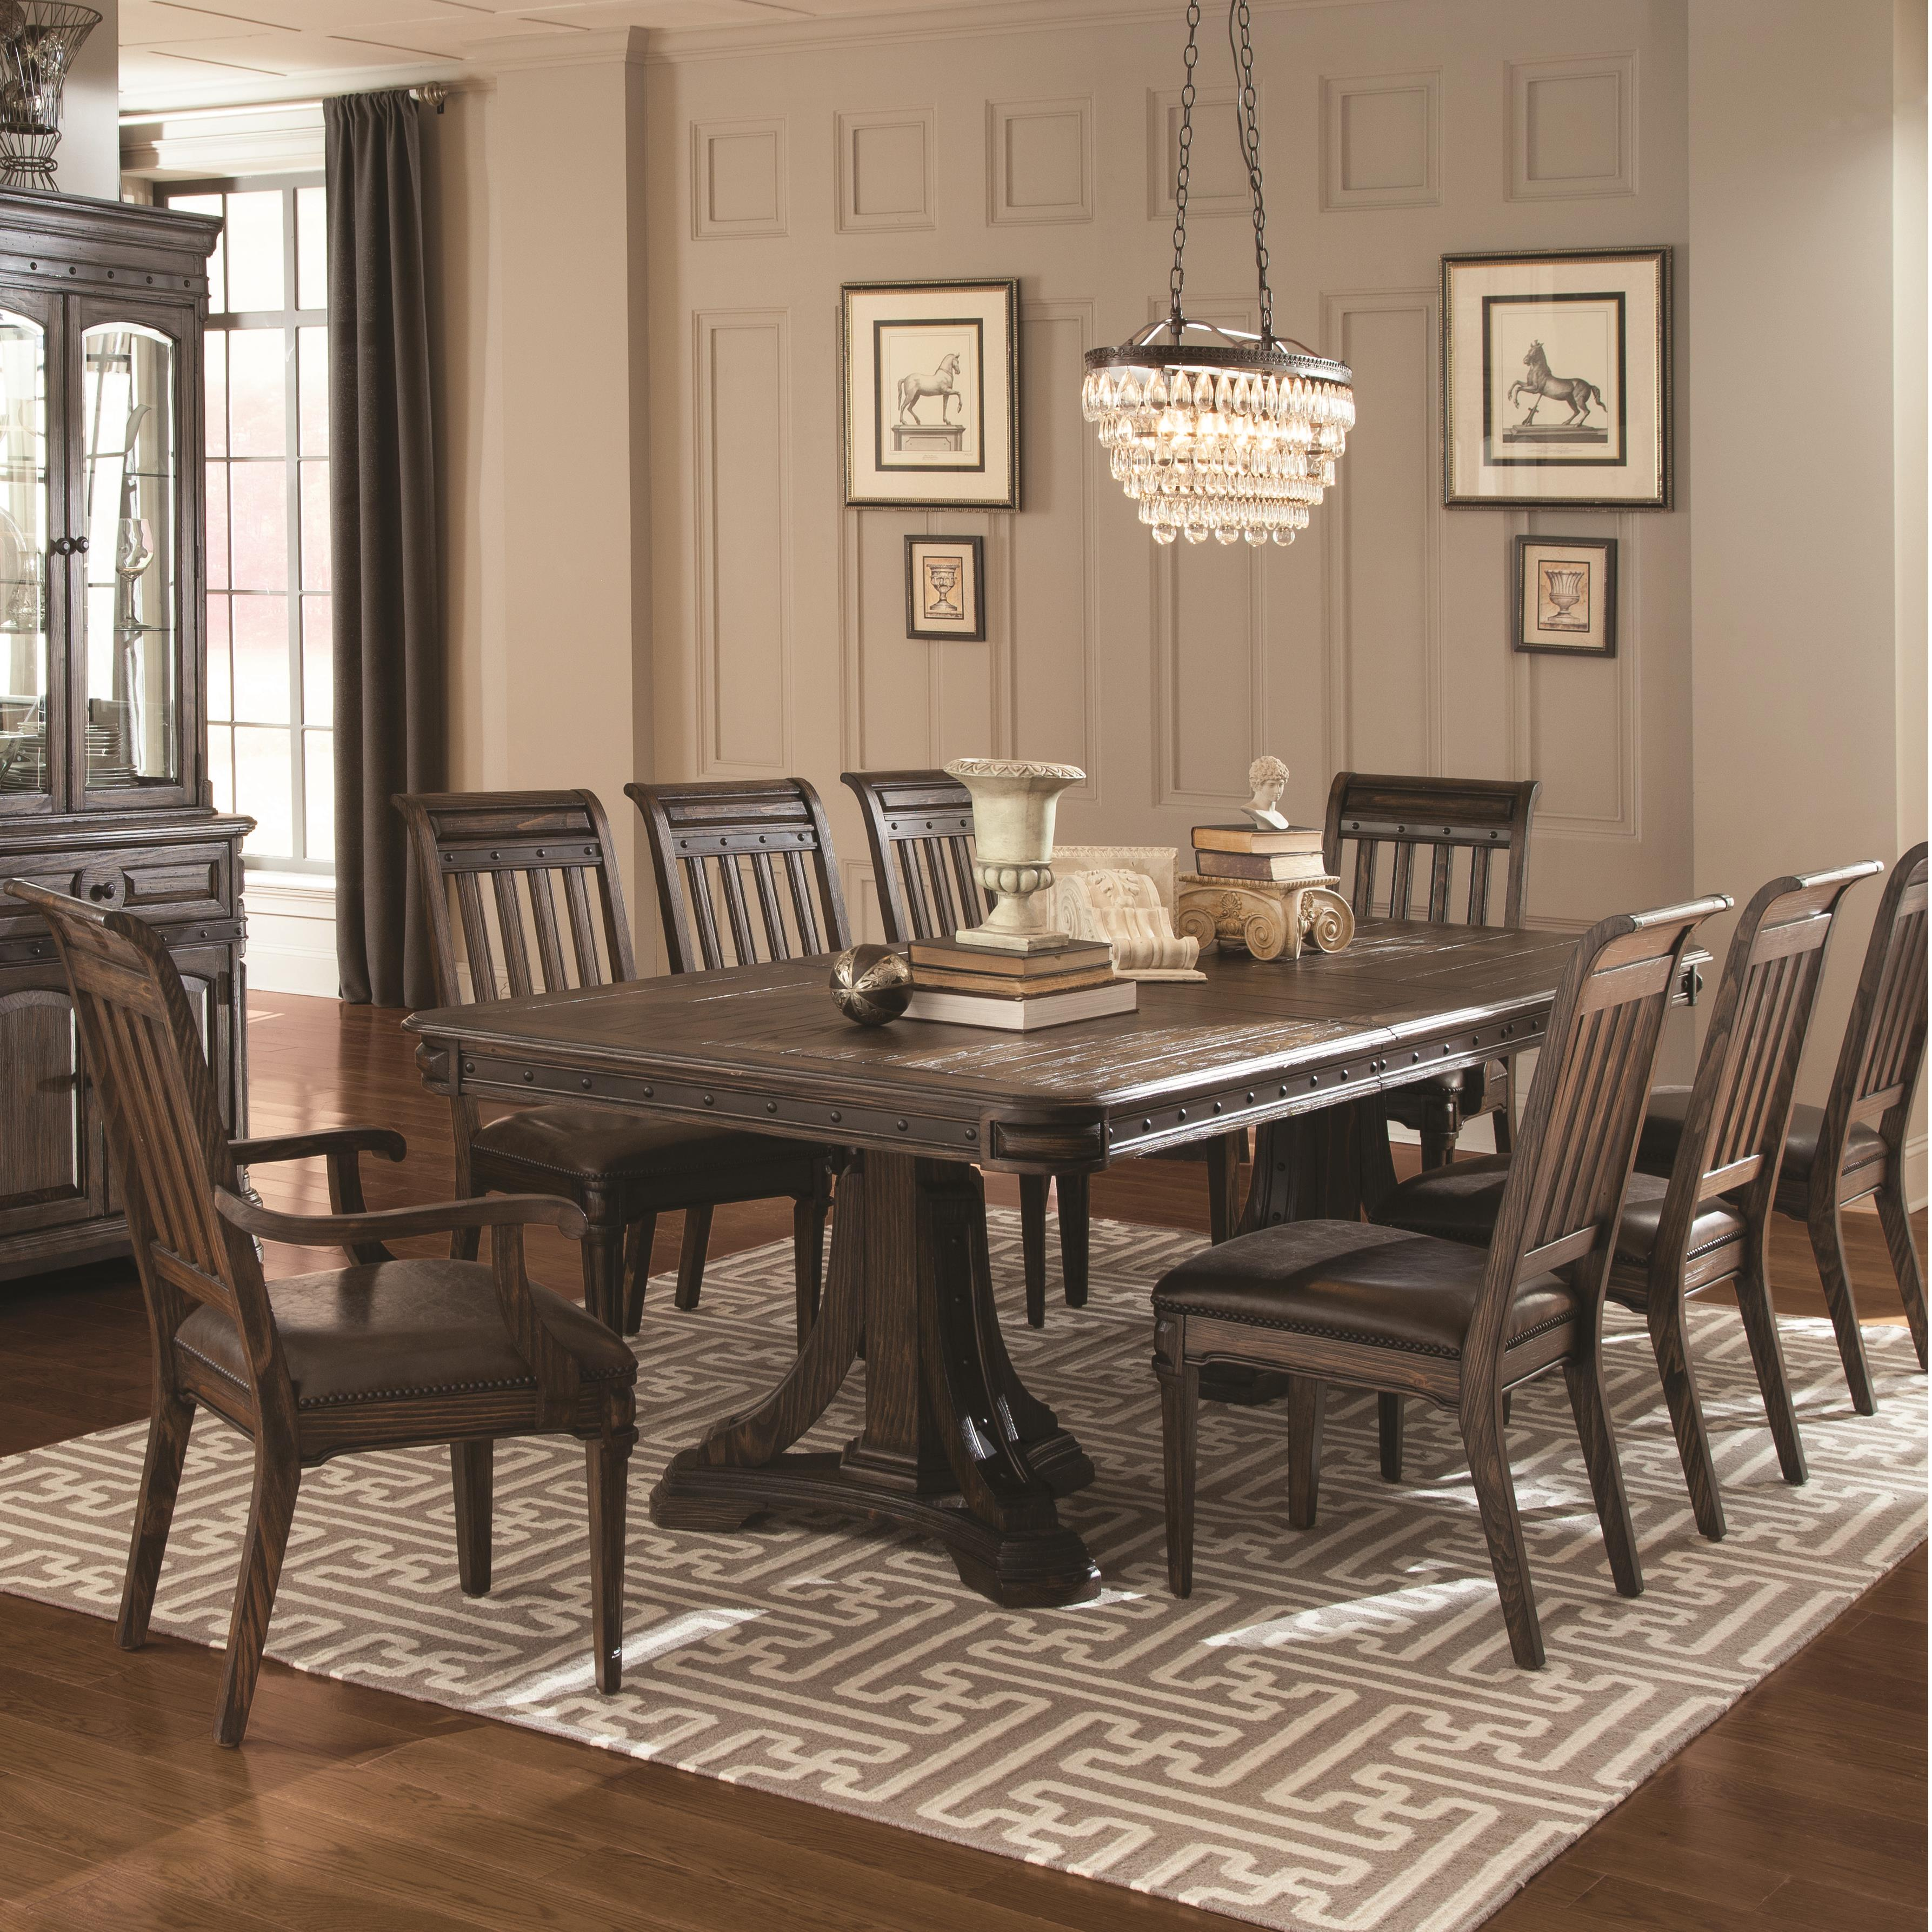 ideas dining chairs country formal for discount sitwithco fancy design sets simple drapery contemporary rooms affordable room